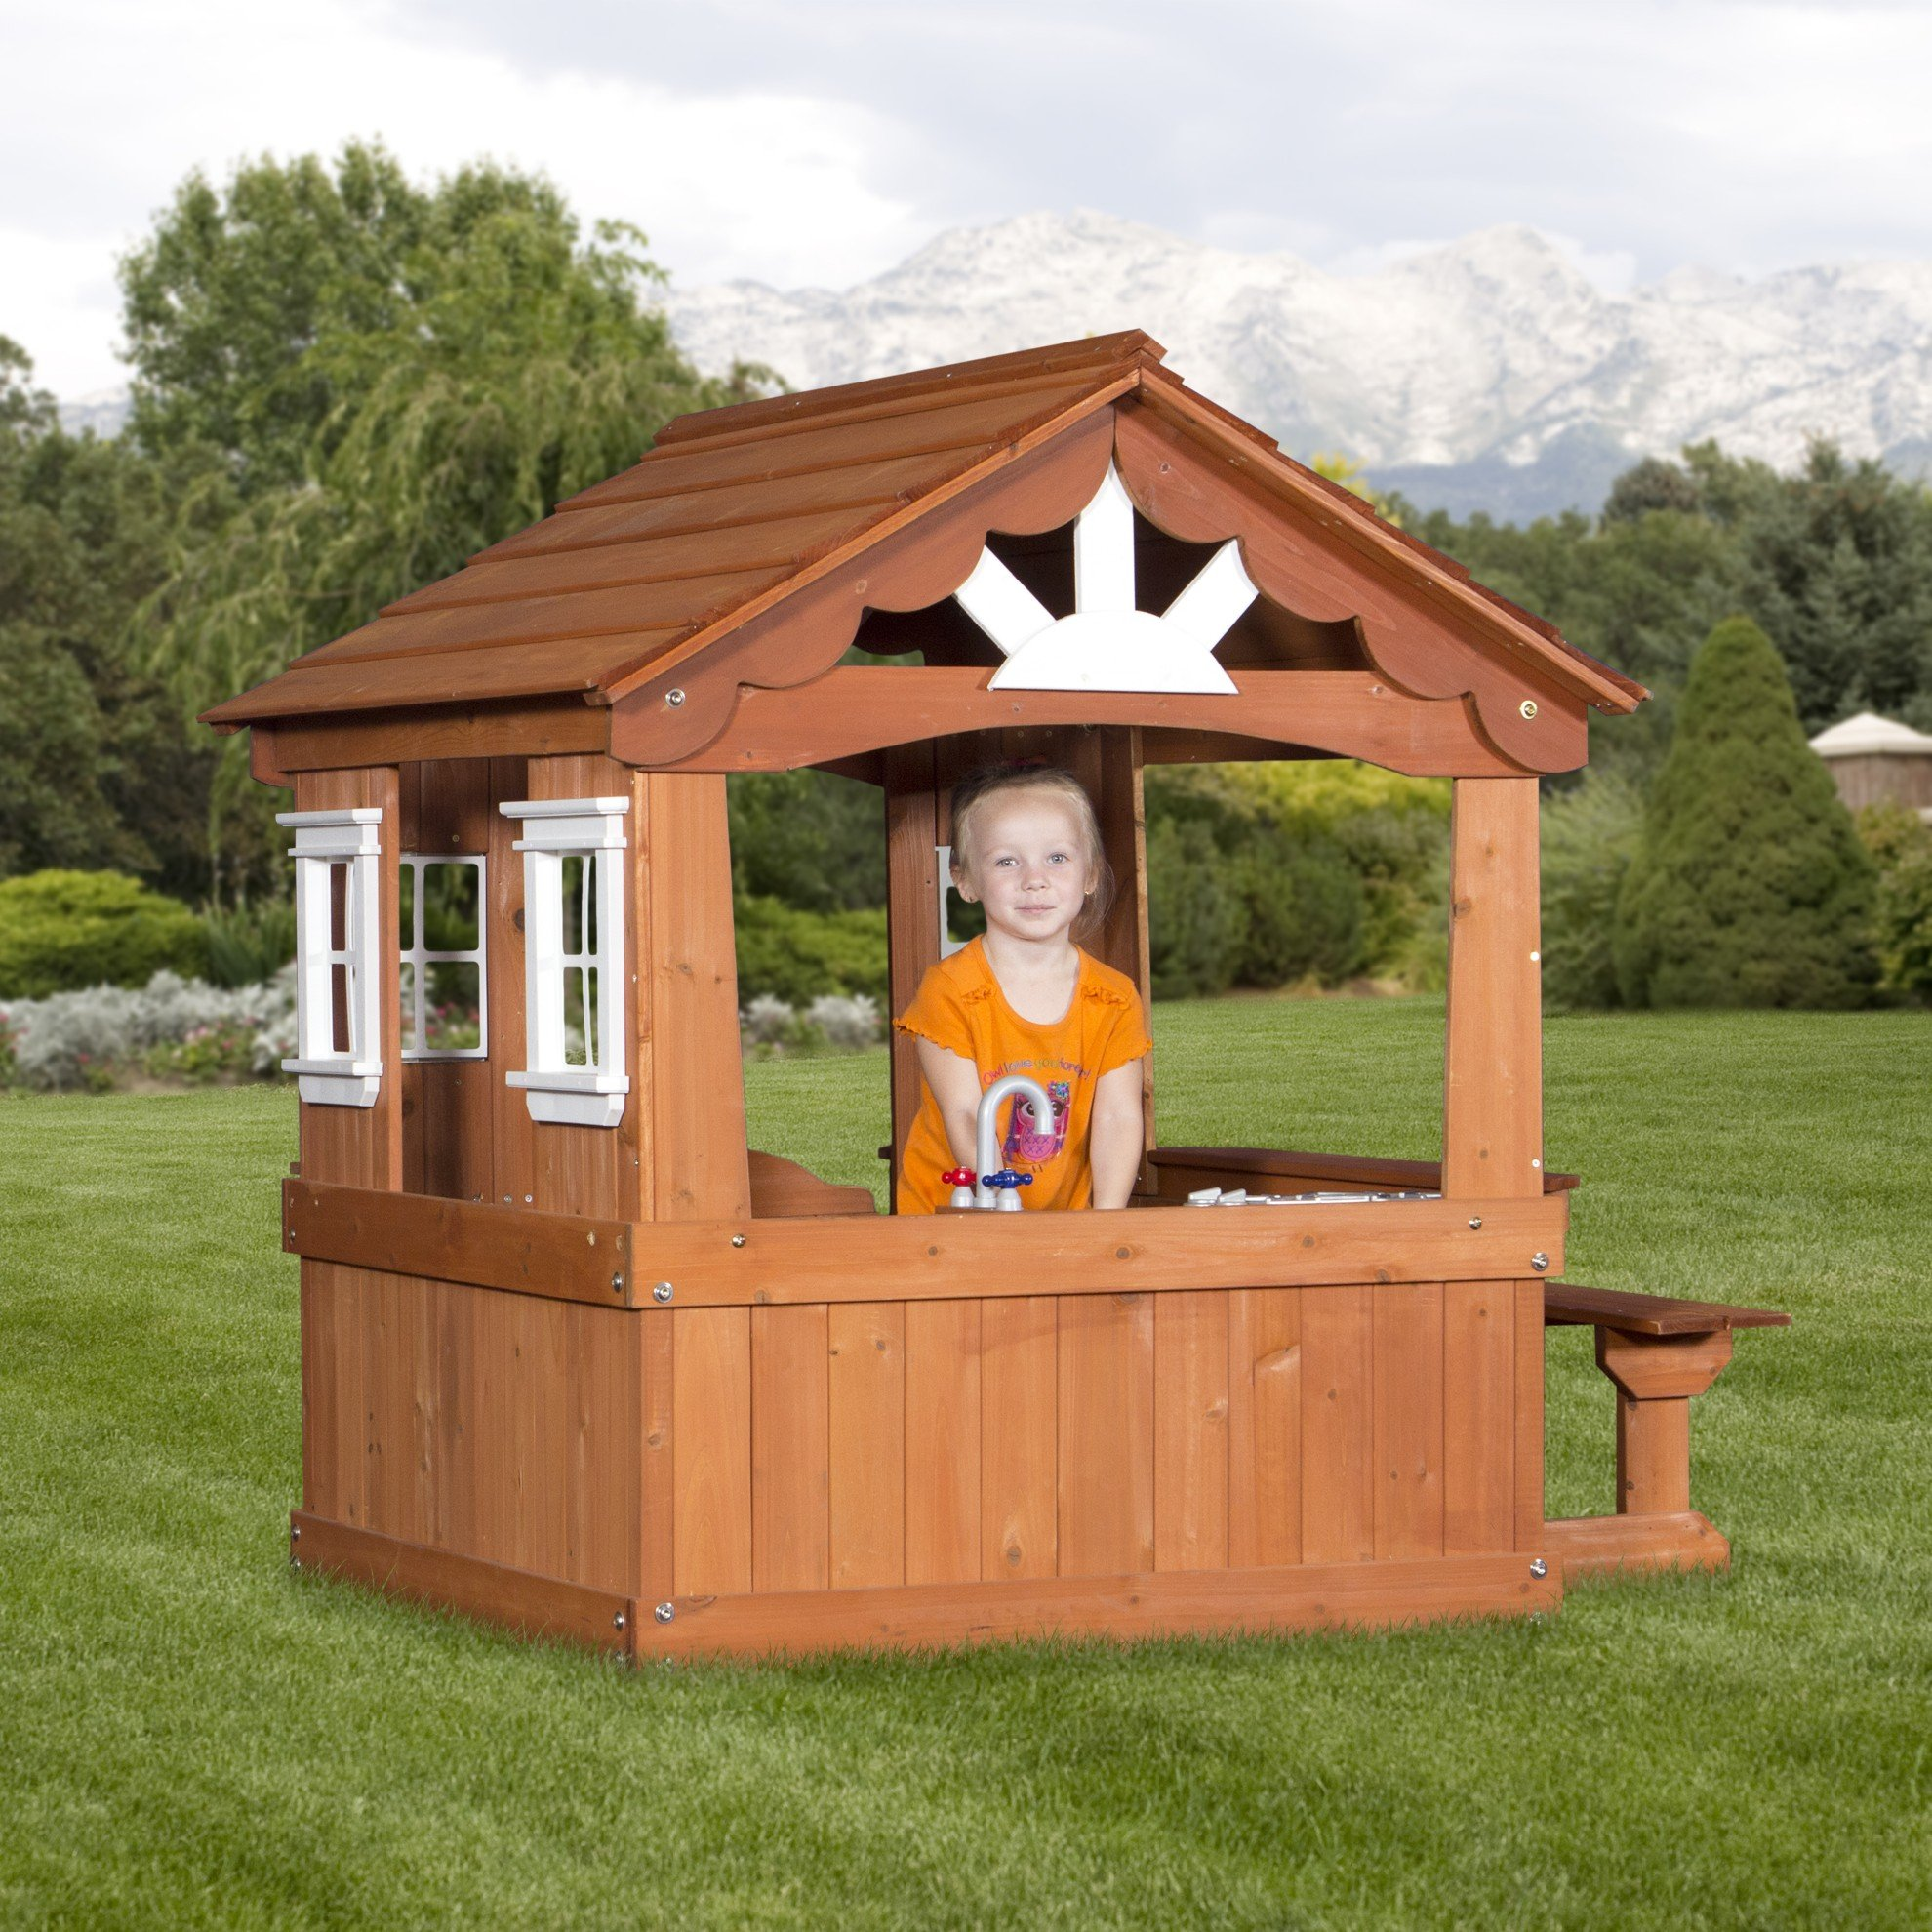 Backyard Discovery Scenic All Cedar Outdoor Wooden Playhouse by Backyard Discovery (Image #3)